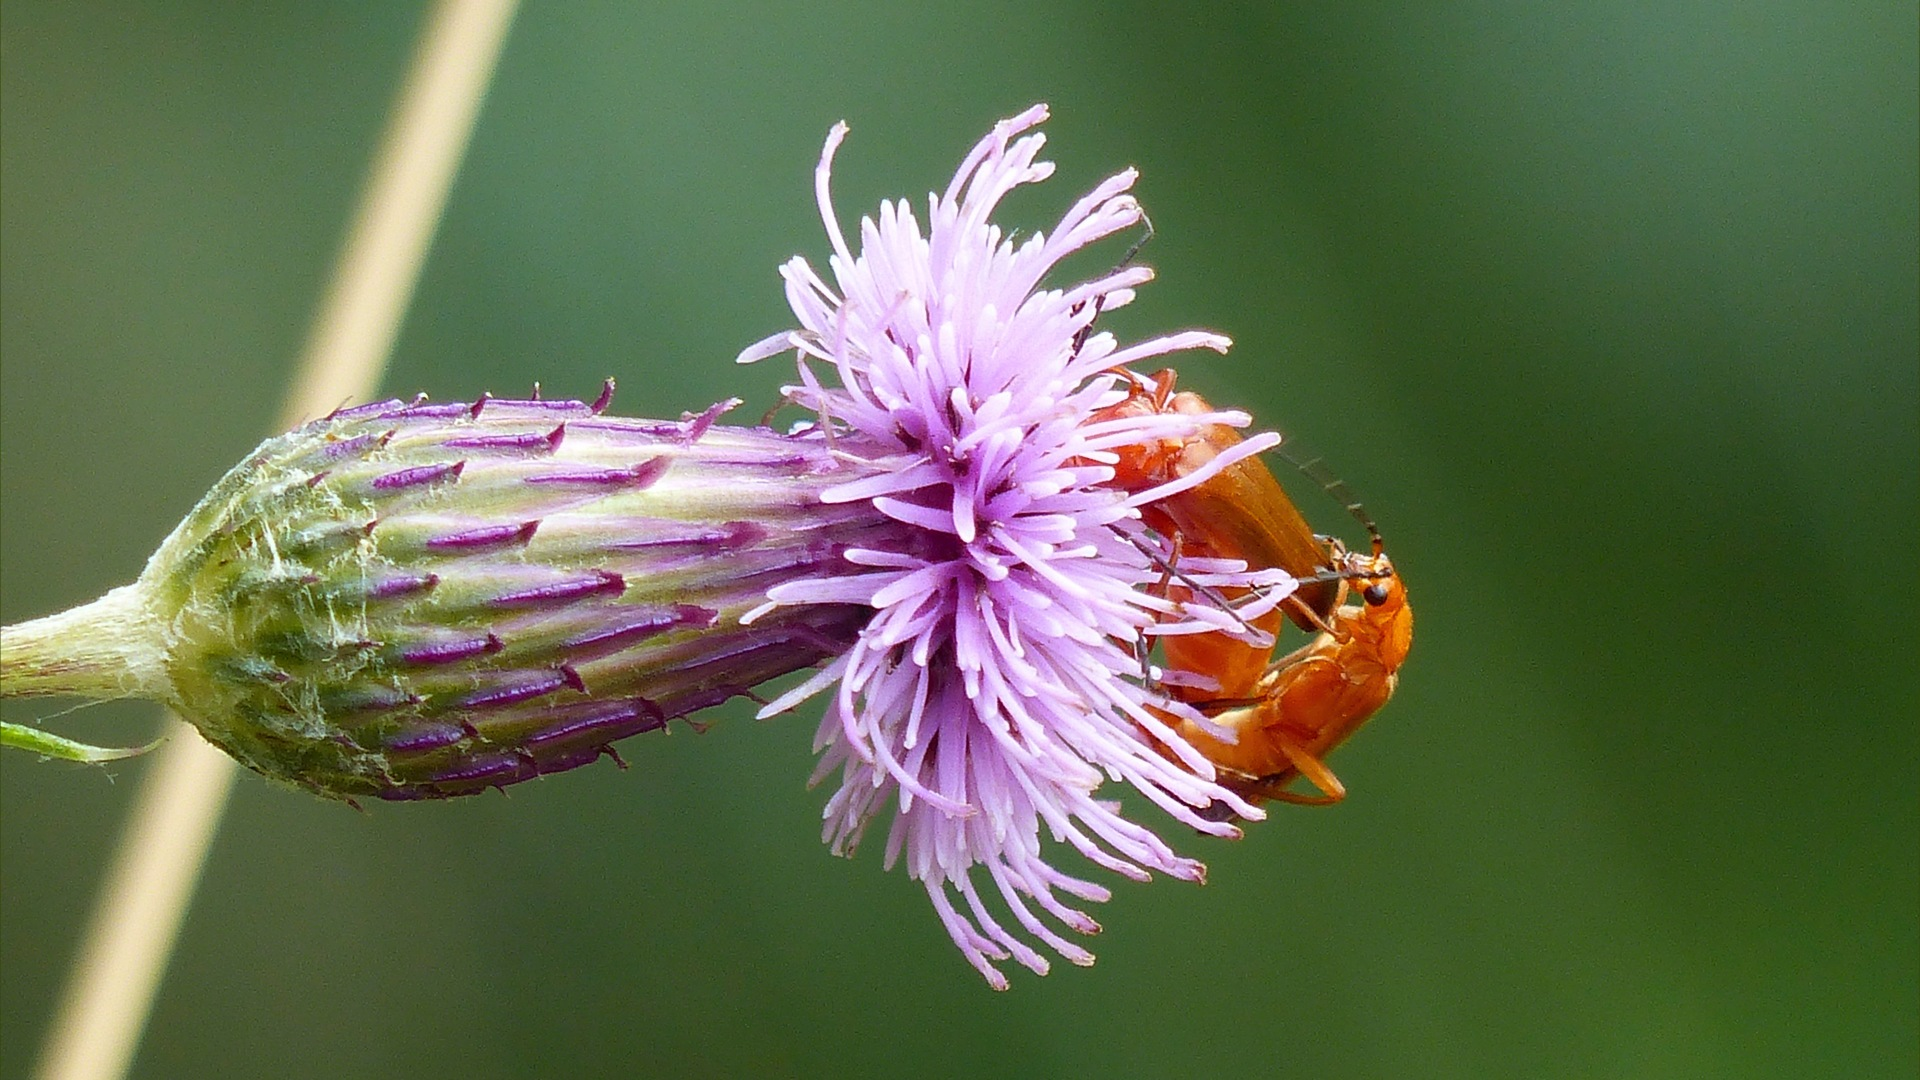 Cardinal beetles on thistle